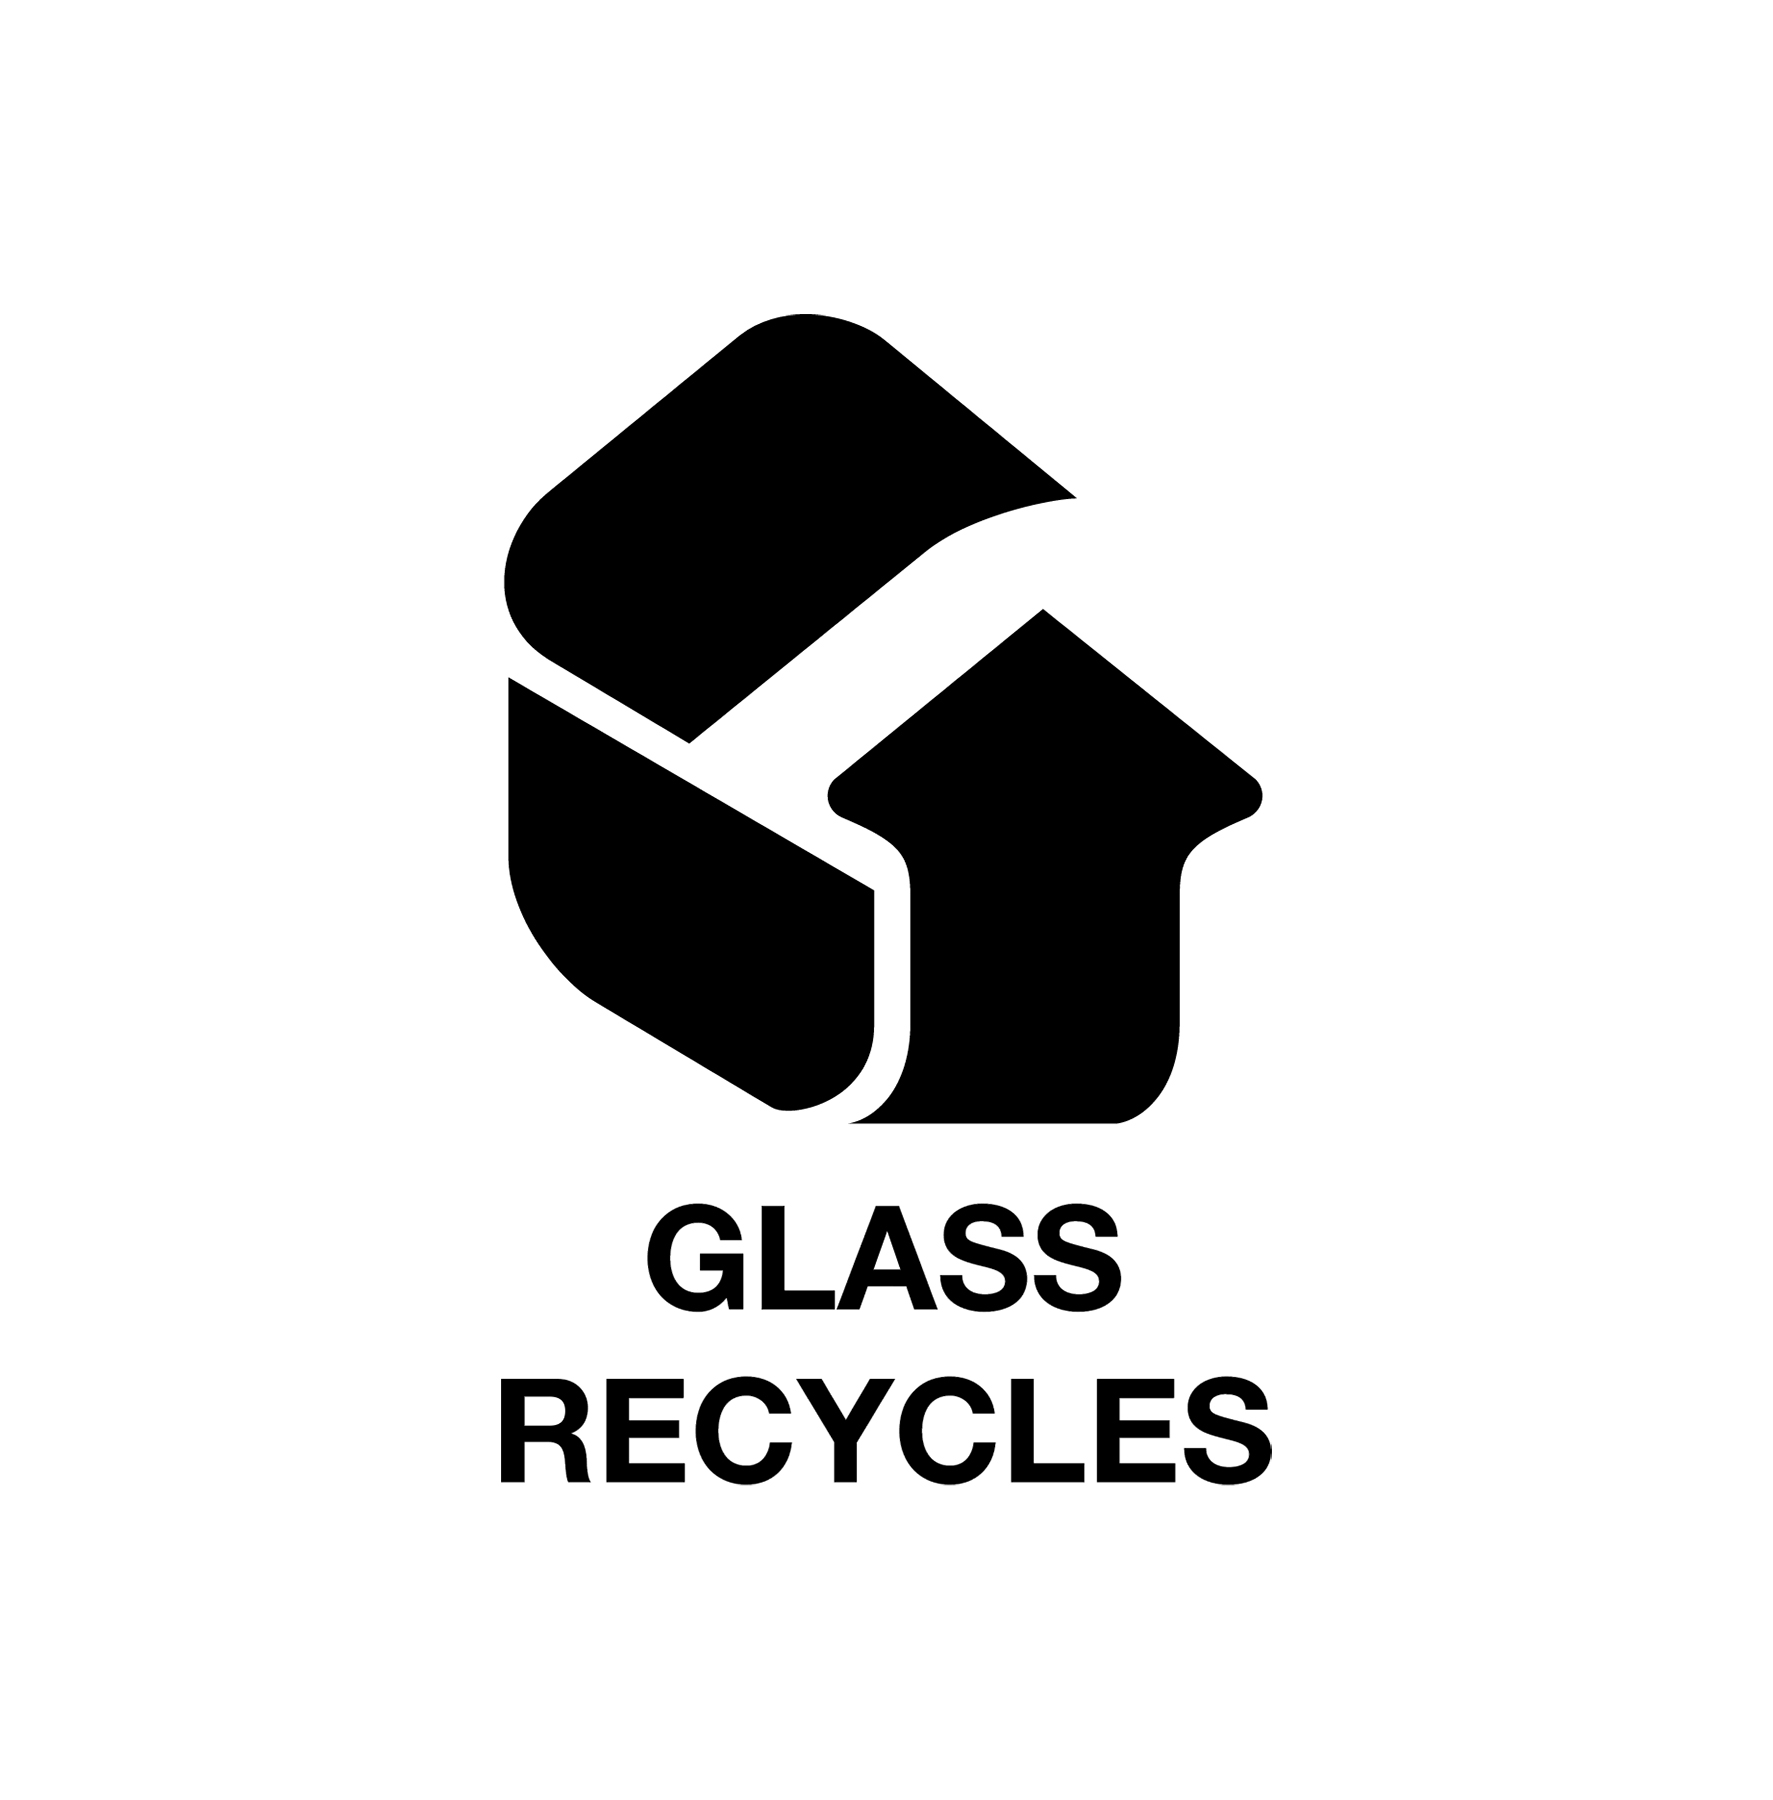 Glass Recycles Logo